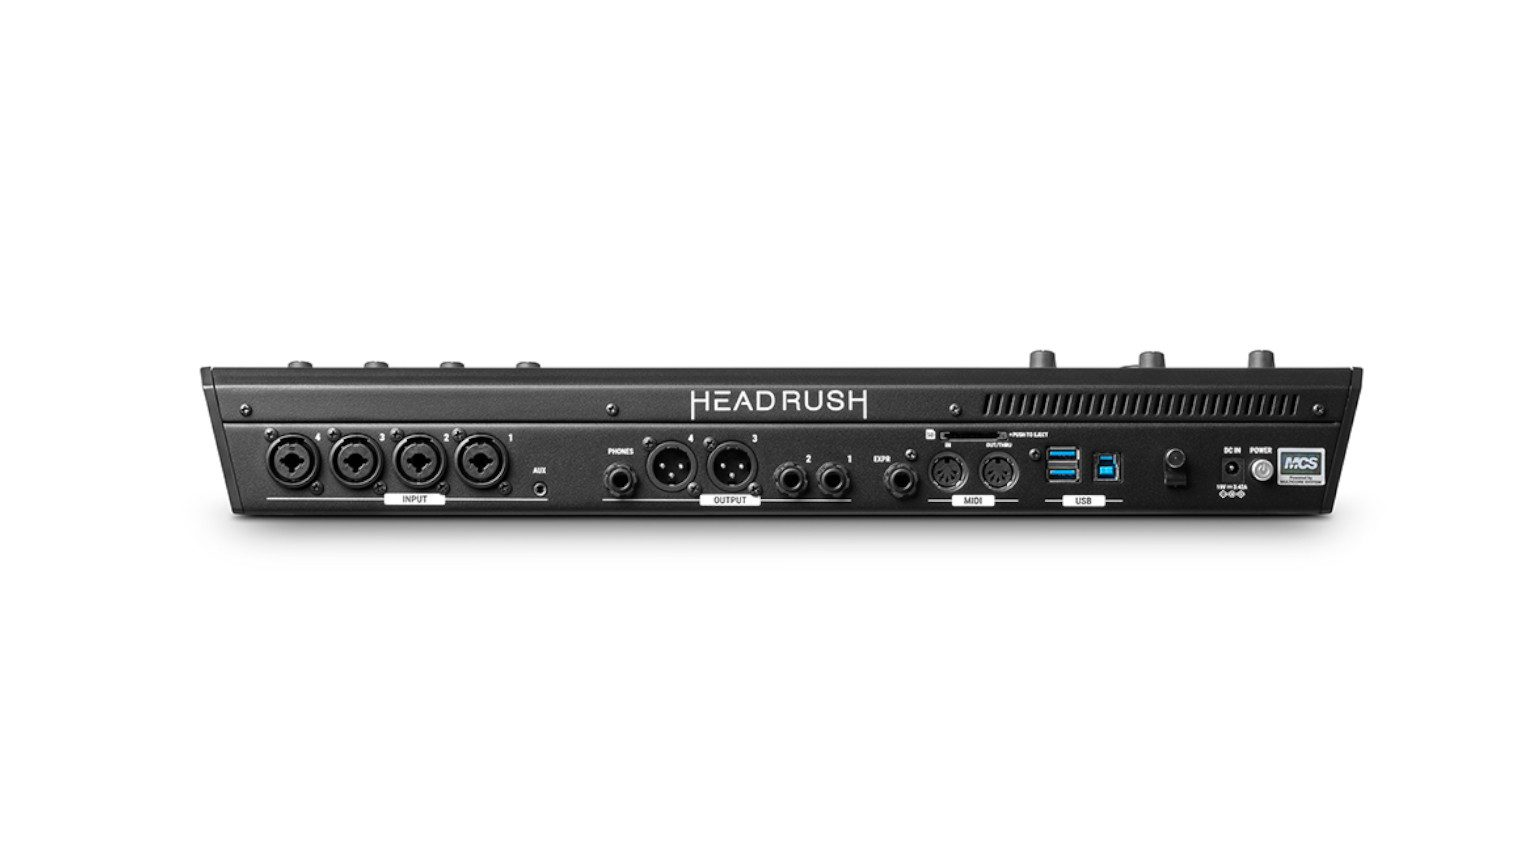 Headrush Looperboard Firmware 2 Rueckseite